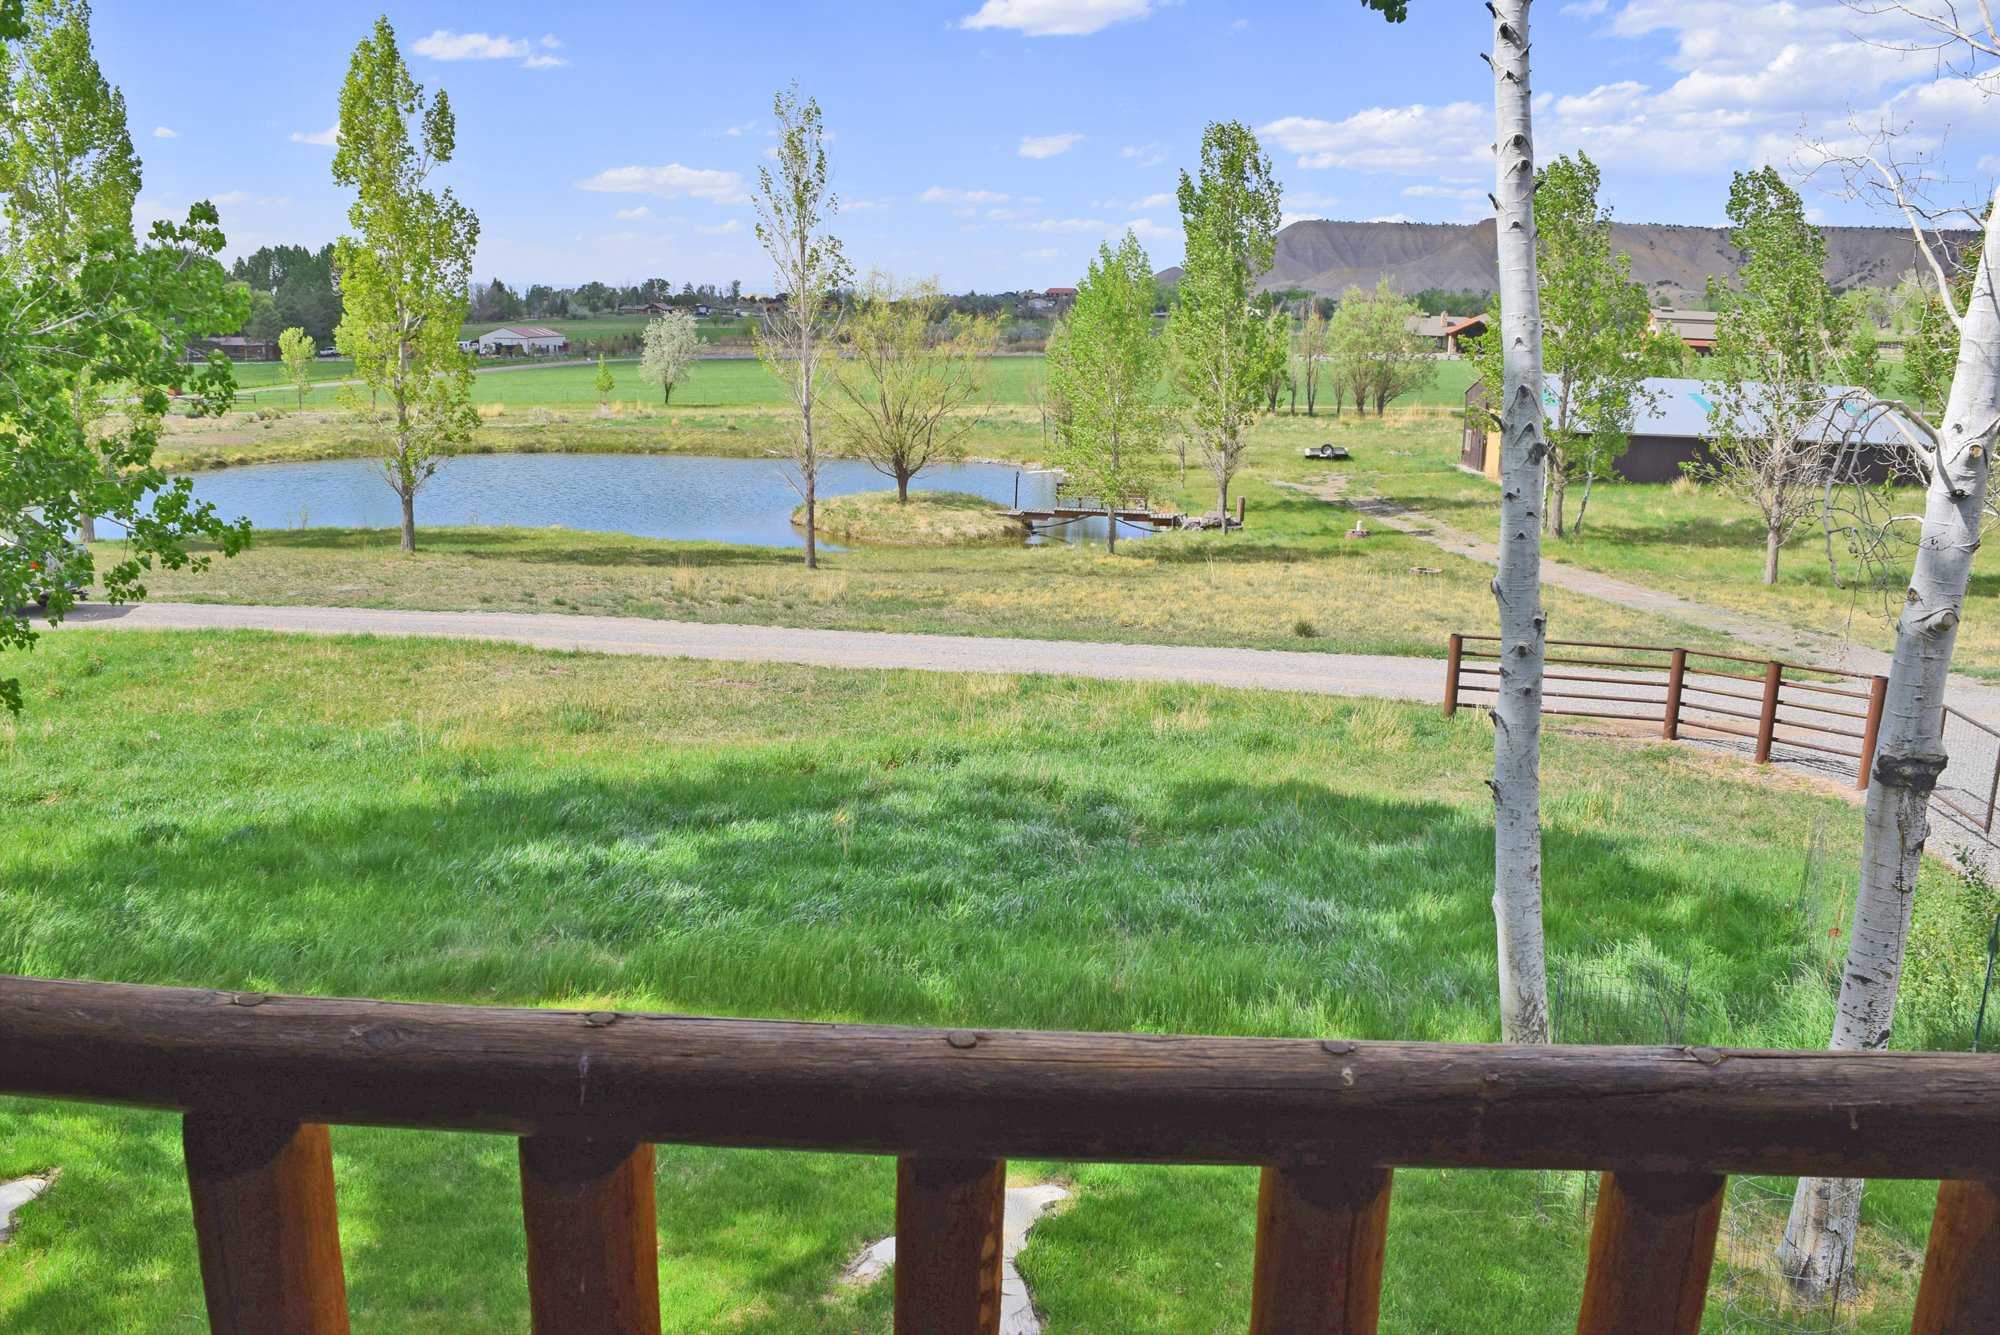 Pond Views from The Porch - 21770 Uncompahgre Rd Montrose, CO 81403 - Atha Team Country Real Estate